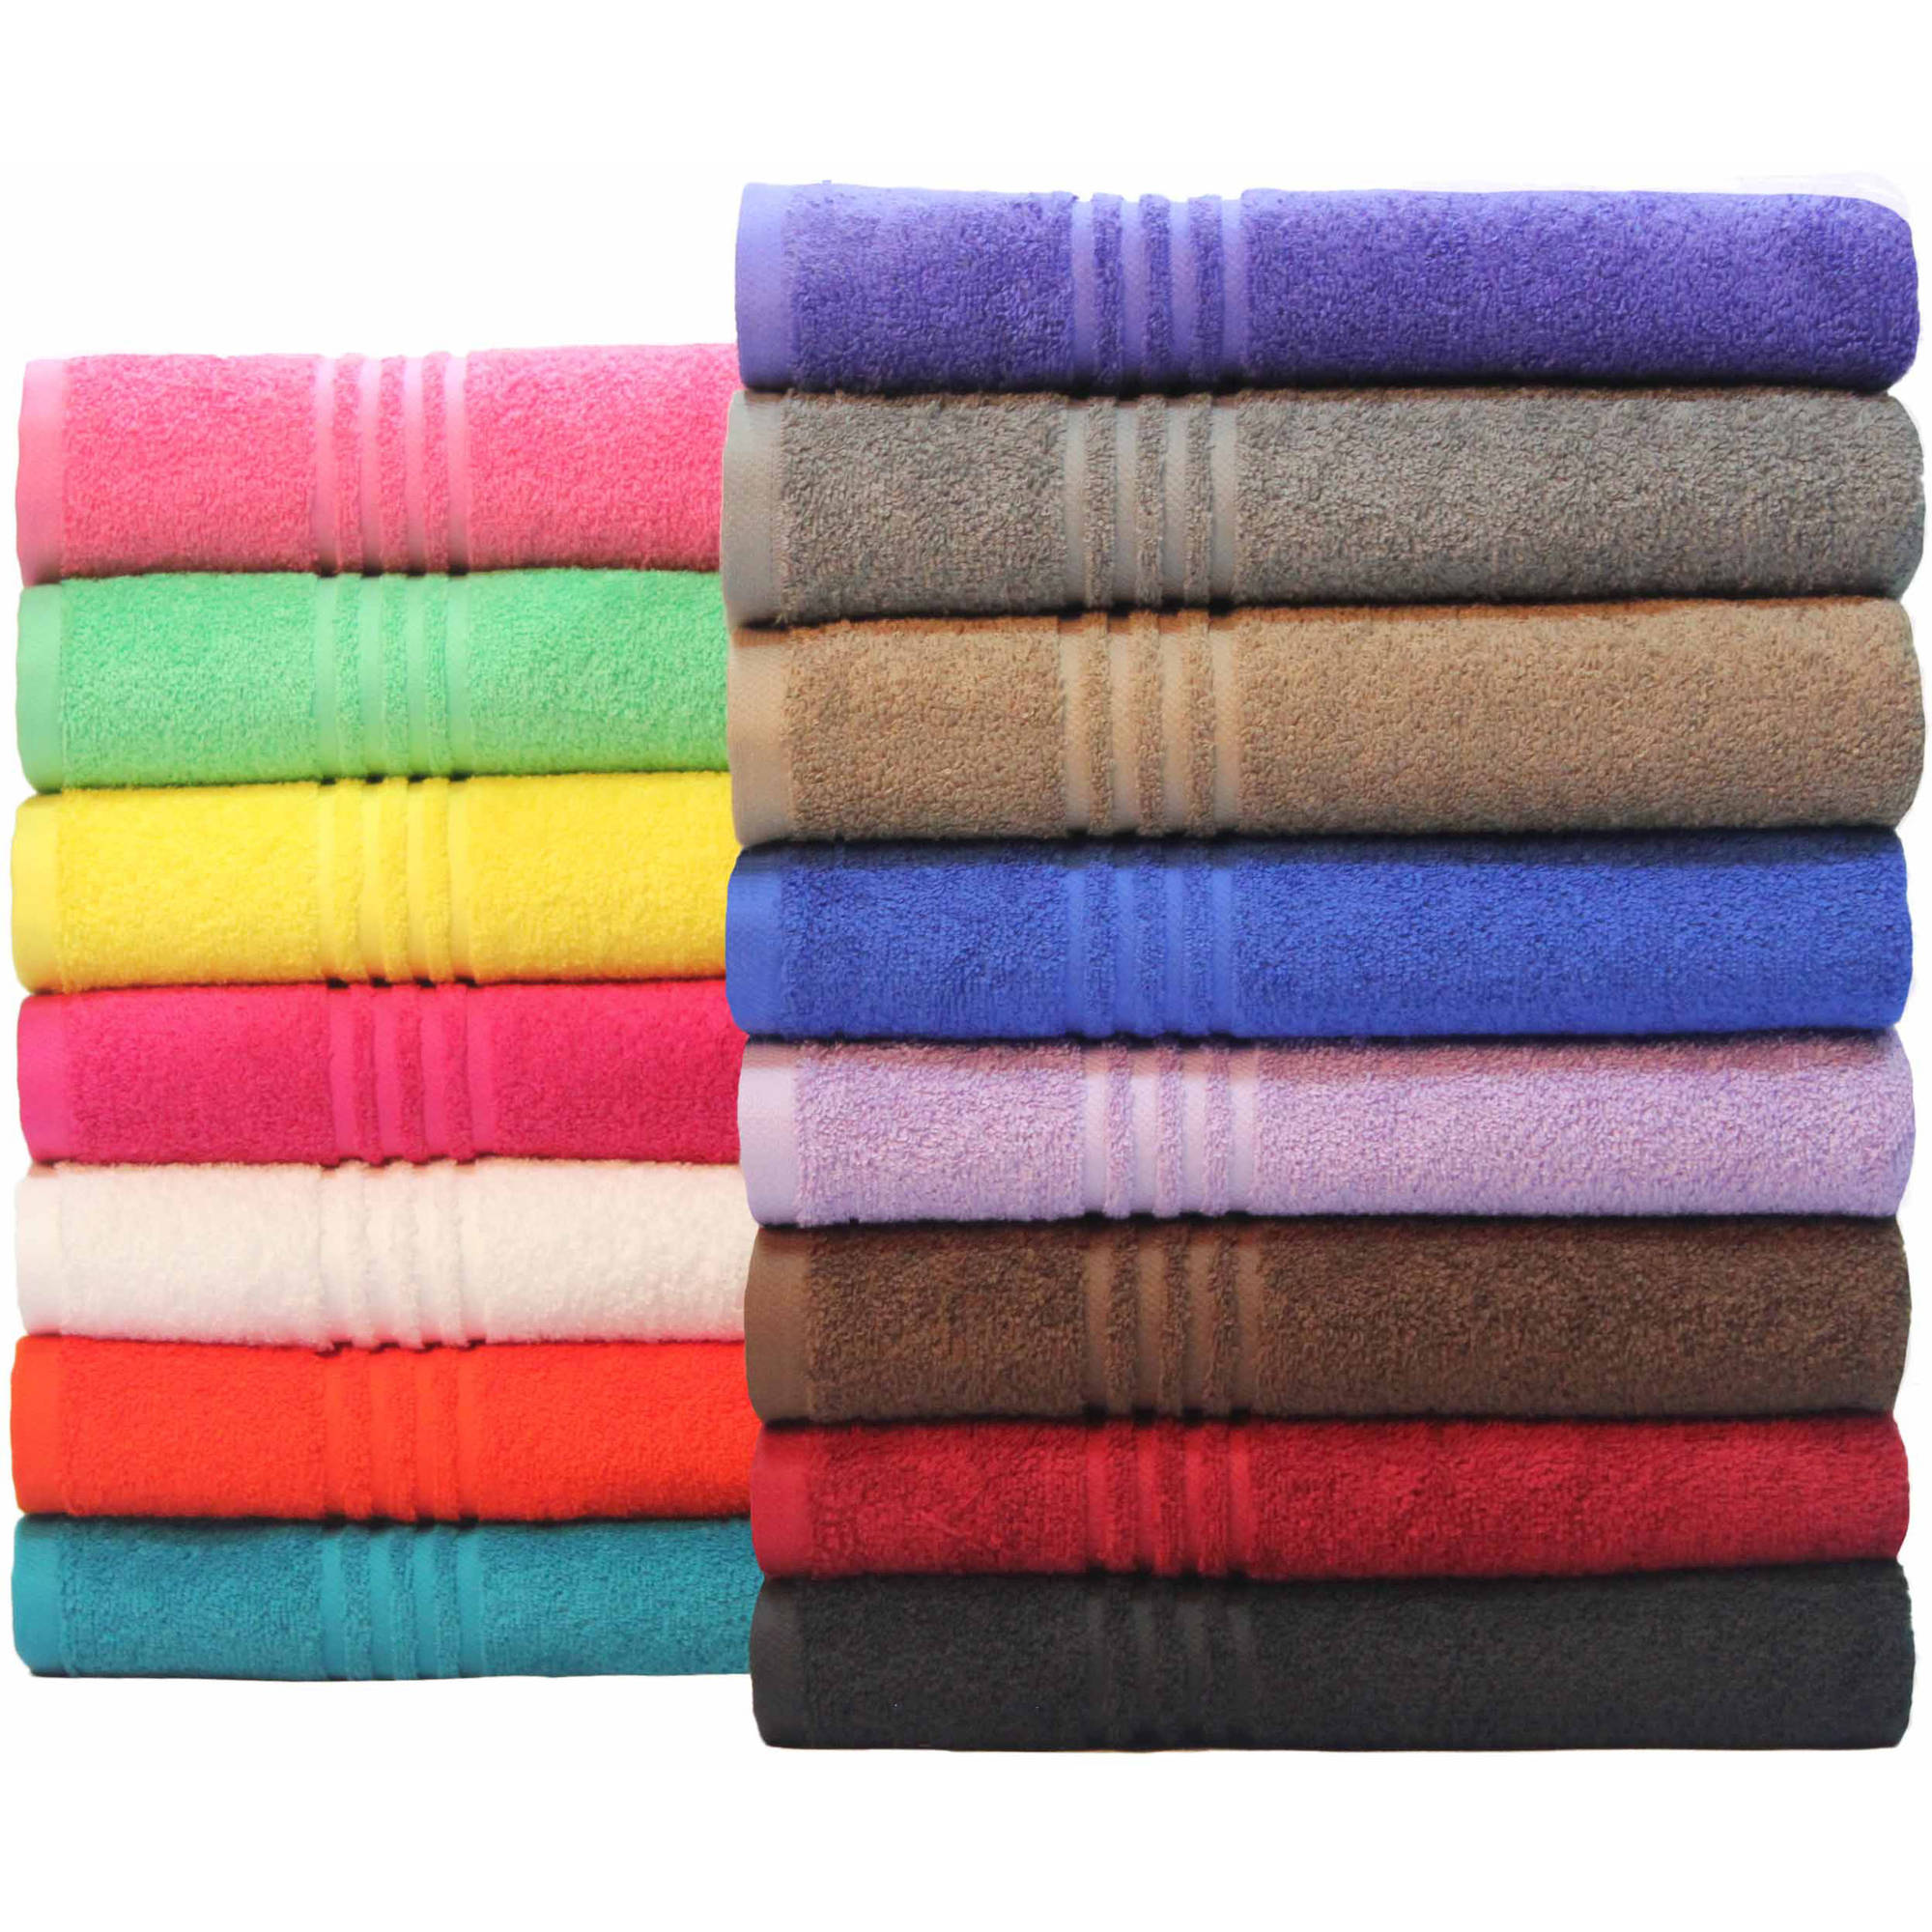 Mainstays Essential True Colors Bath Towel Collection Walmartcom